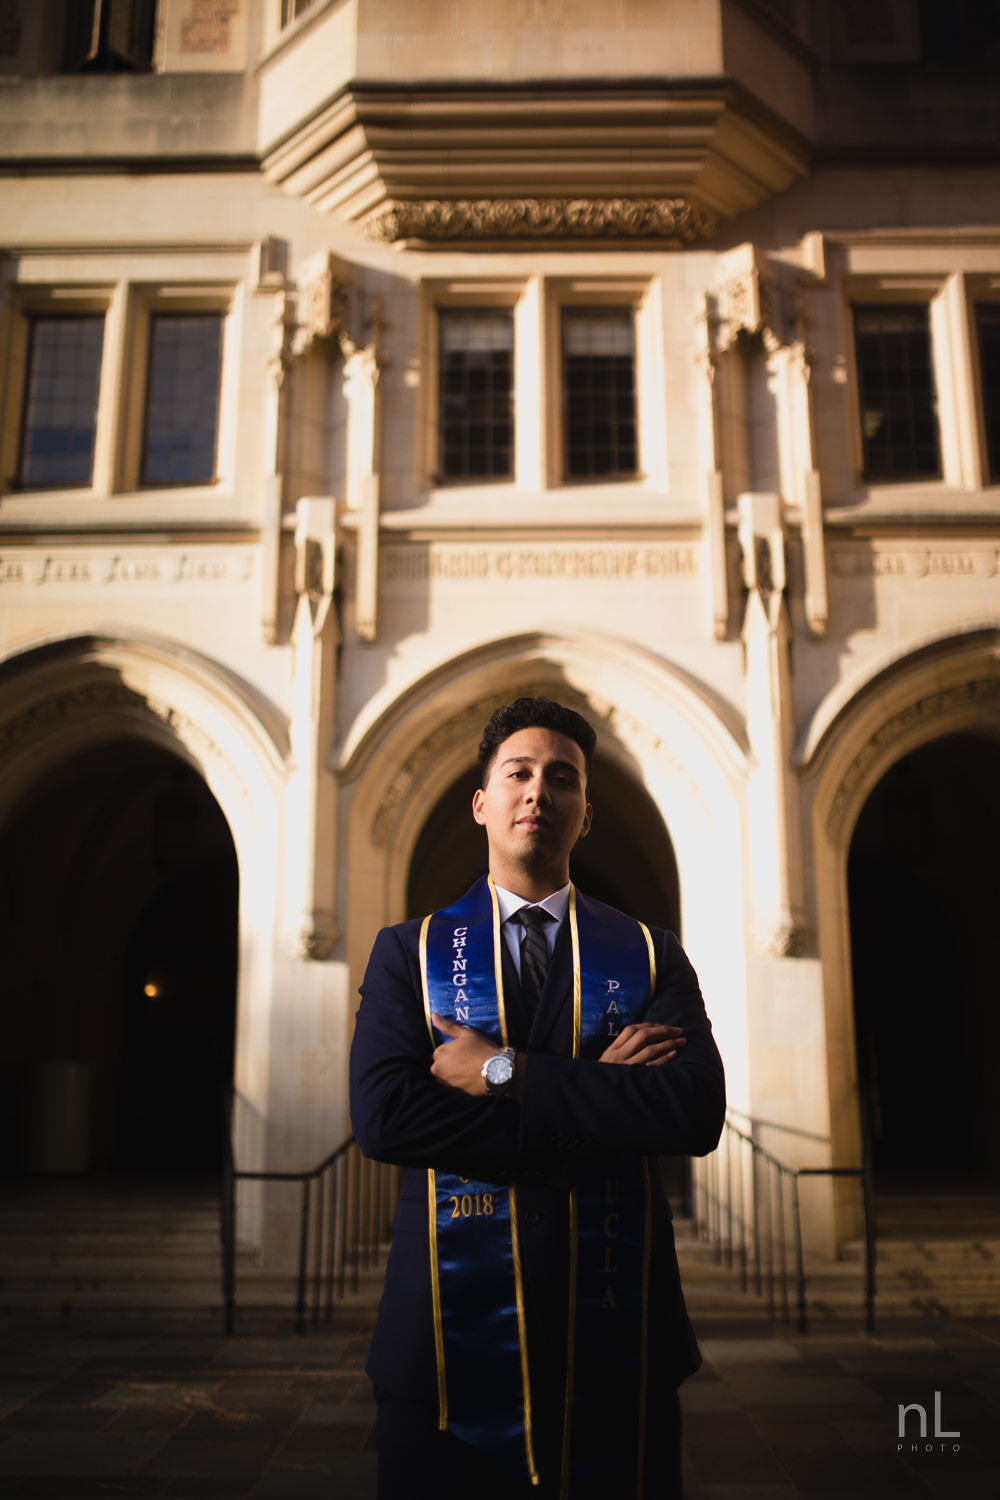 los-angeles-ucla-graduation-portraits-9168.jpg